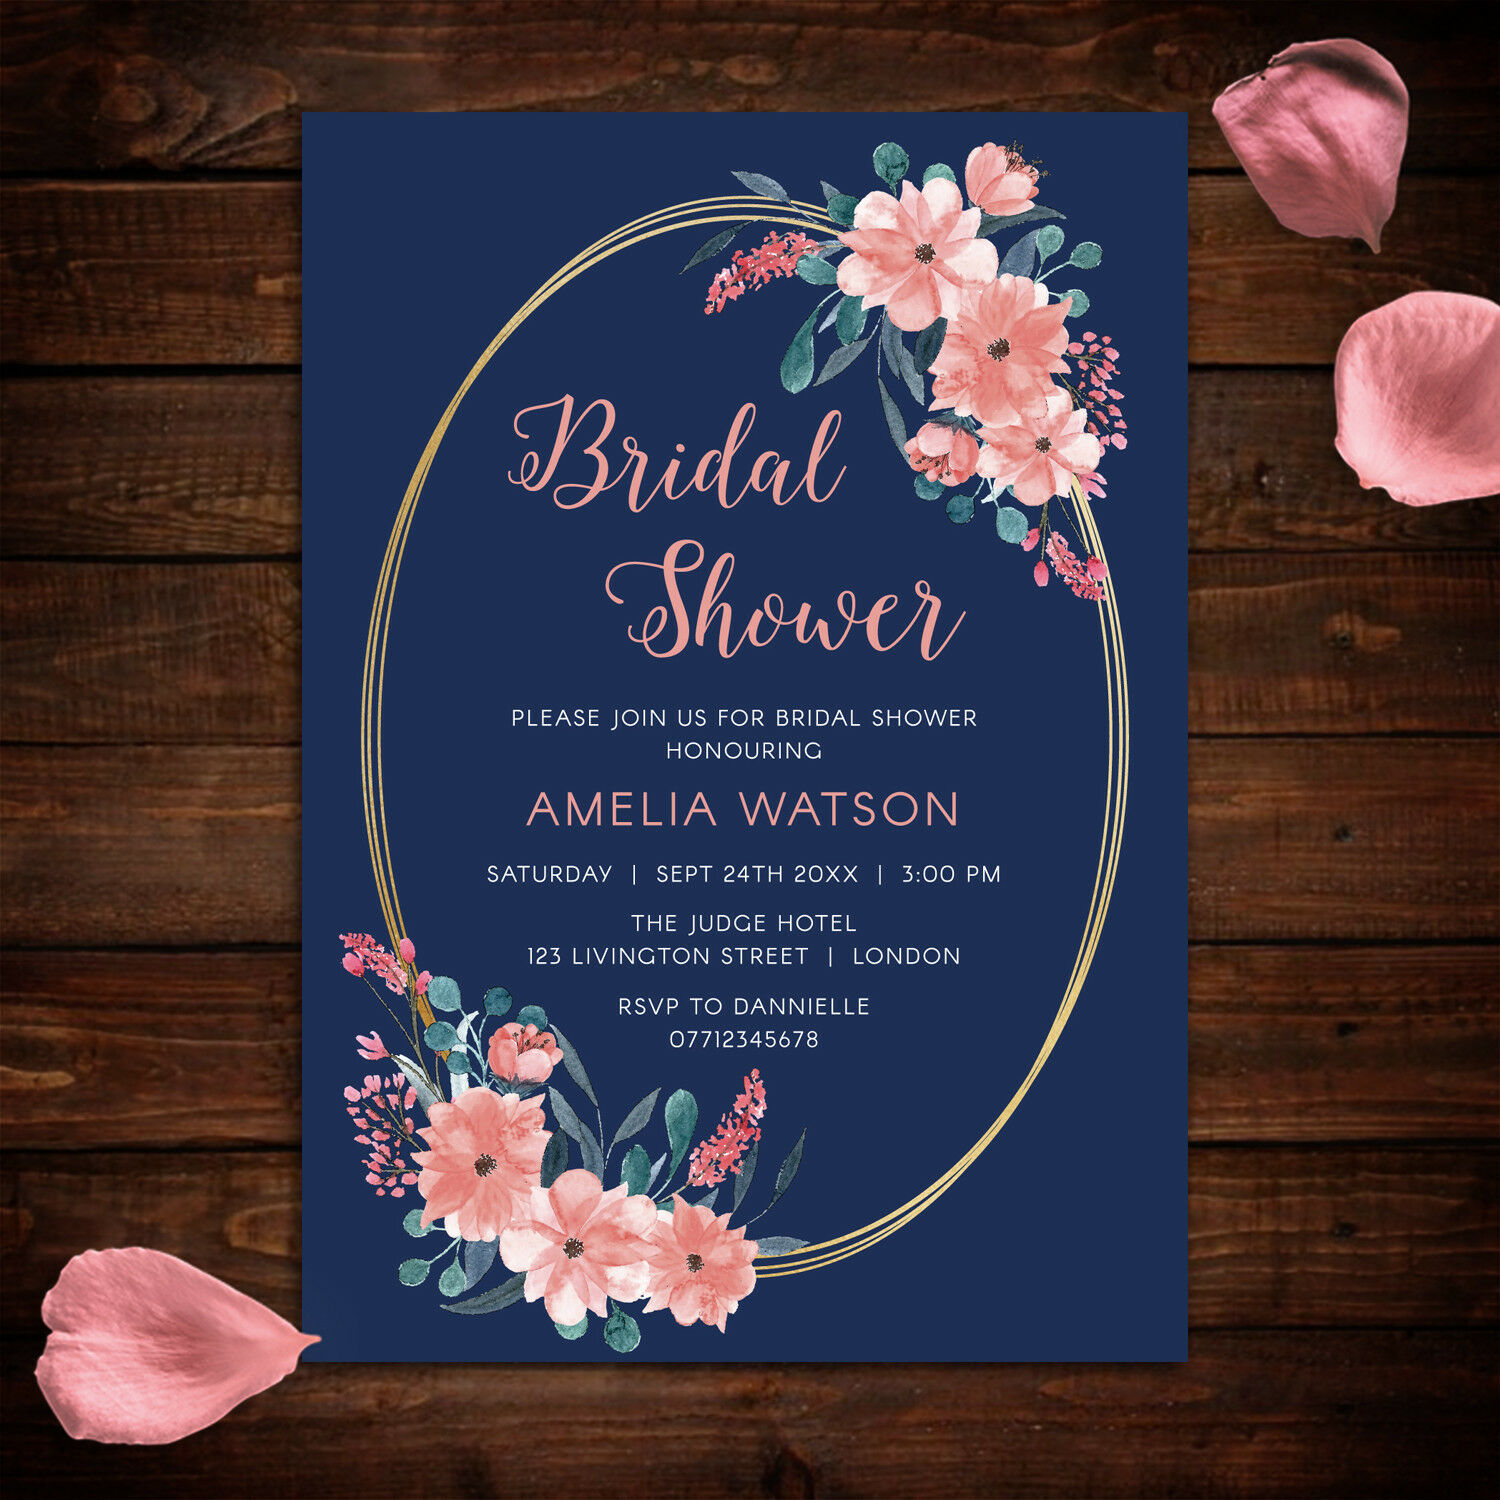 Bridal shower invitations floral navy and pink theme pack of 10 a6 1 of 1free shipping filmwisefo